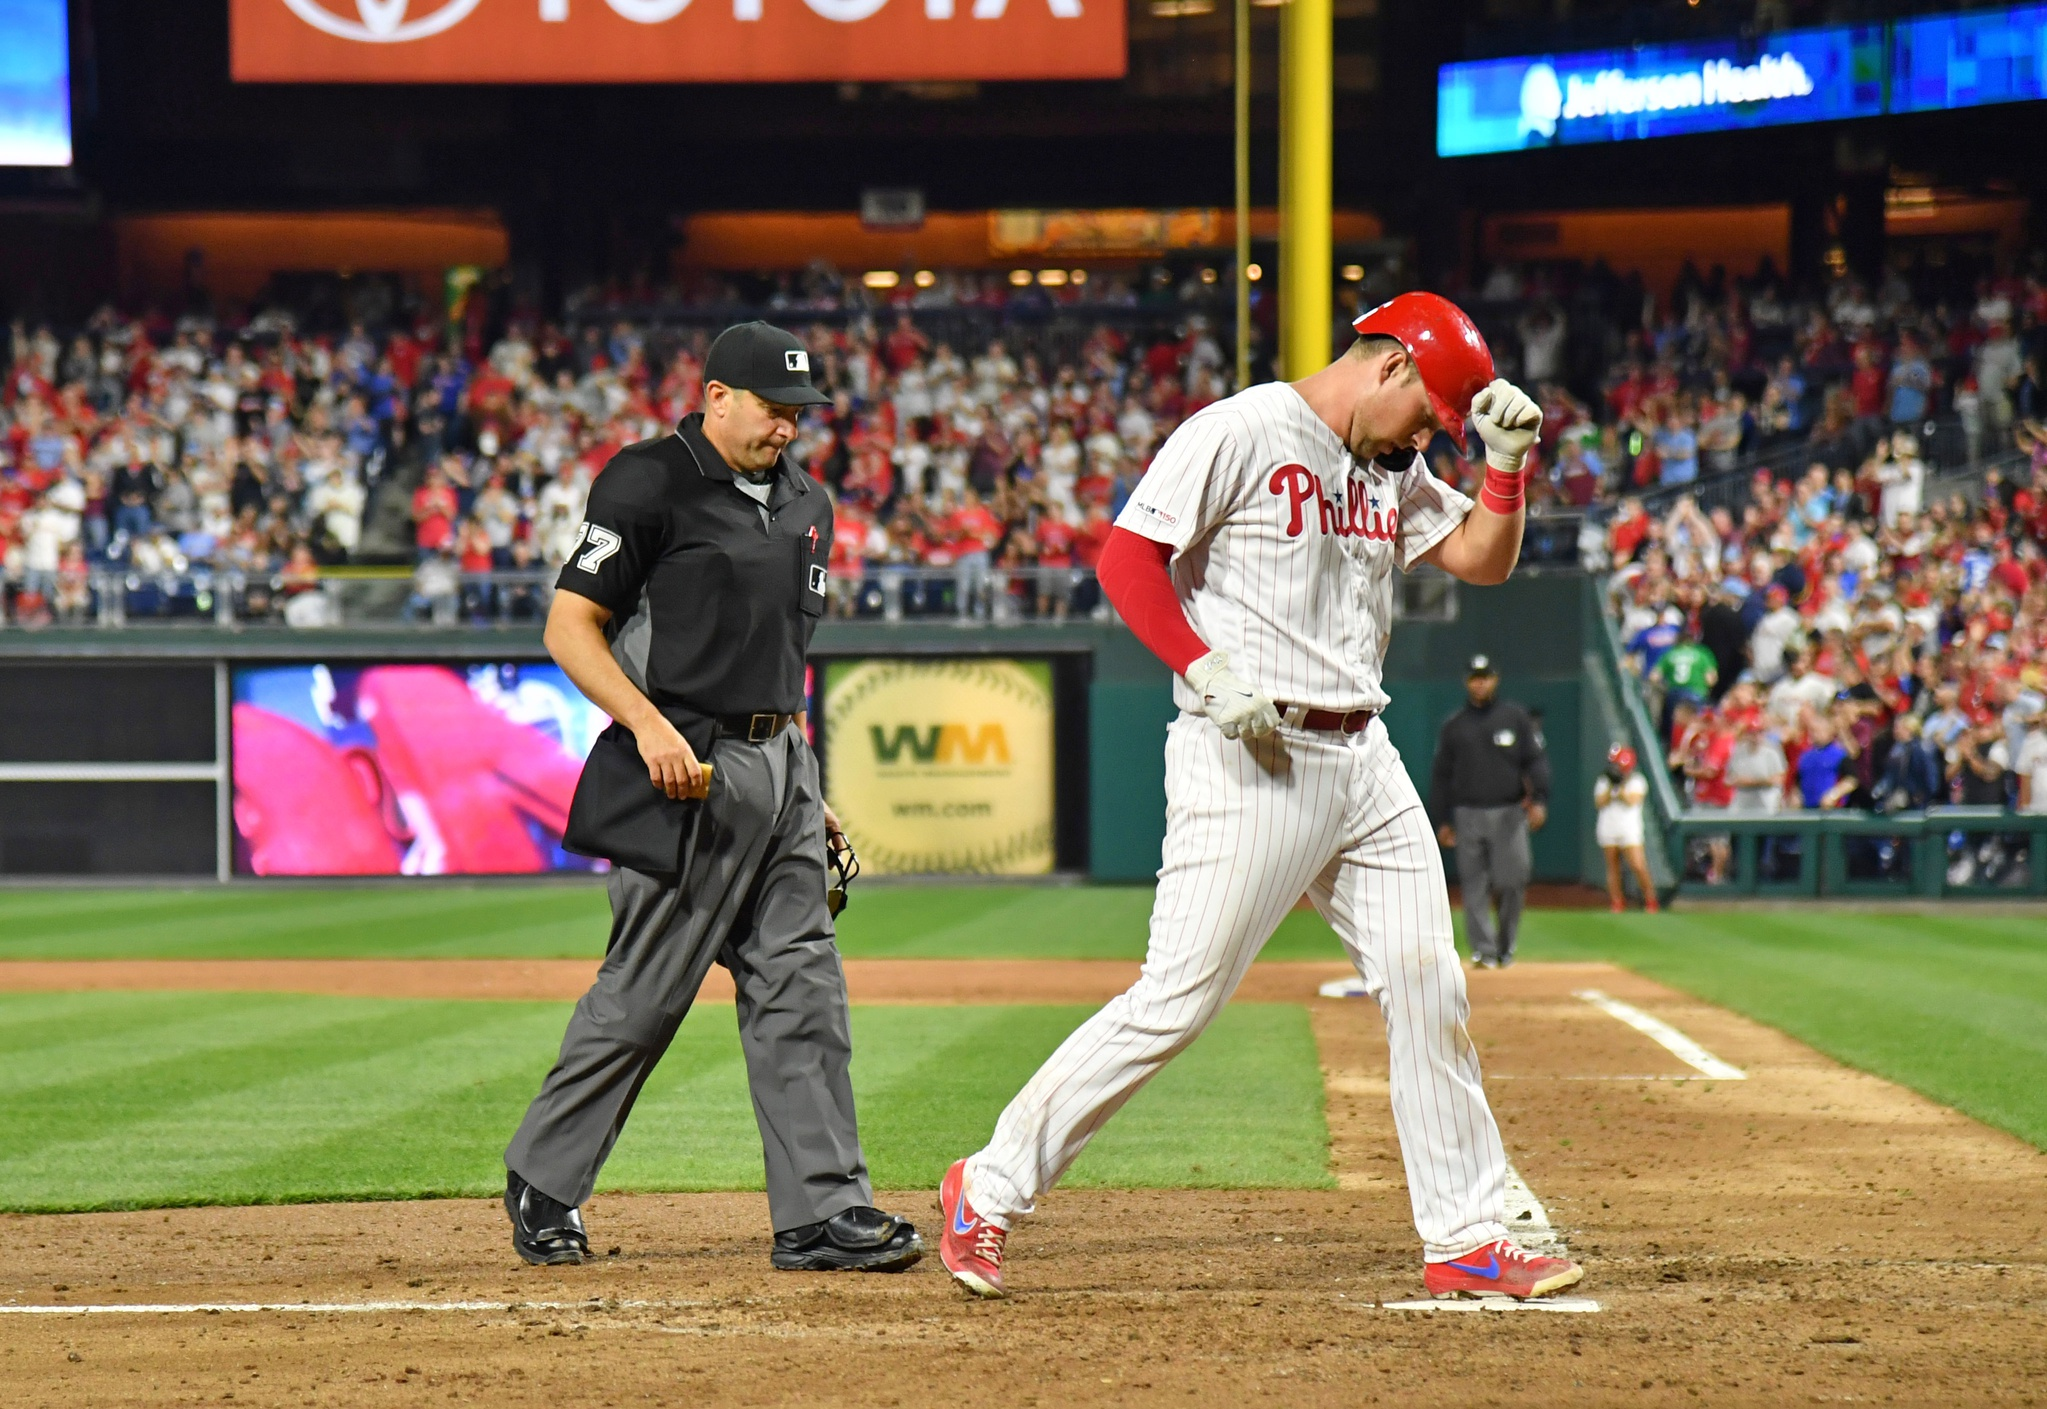 Rhys Hoskins powers Phillies past Nationals